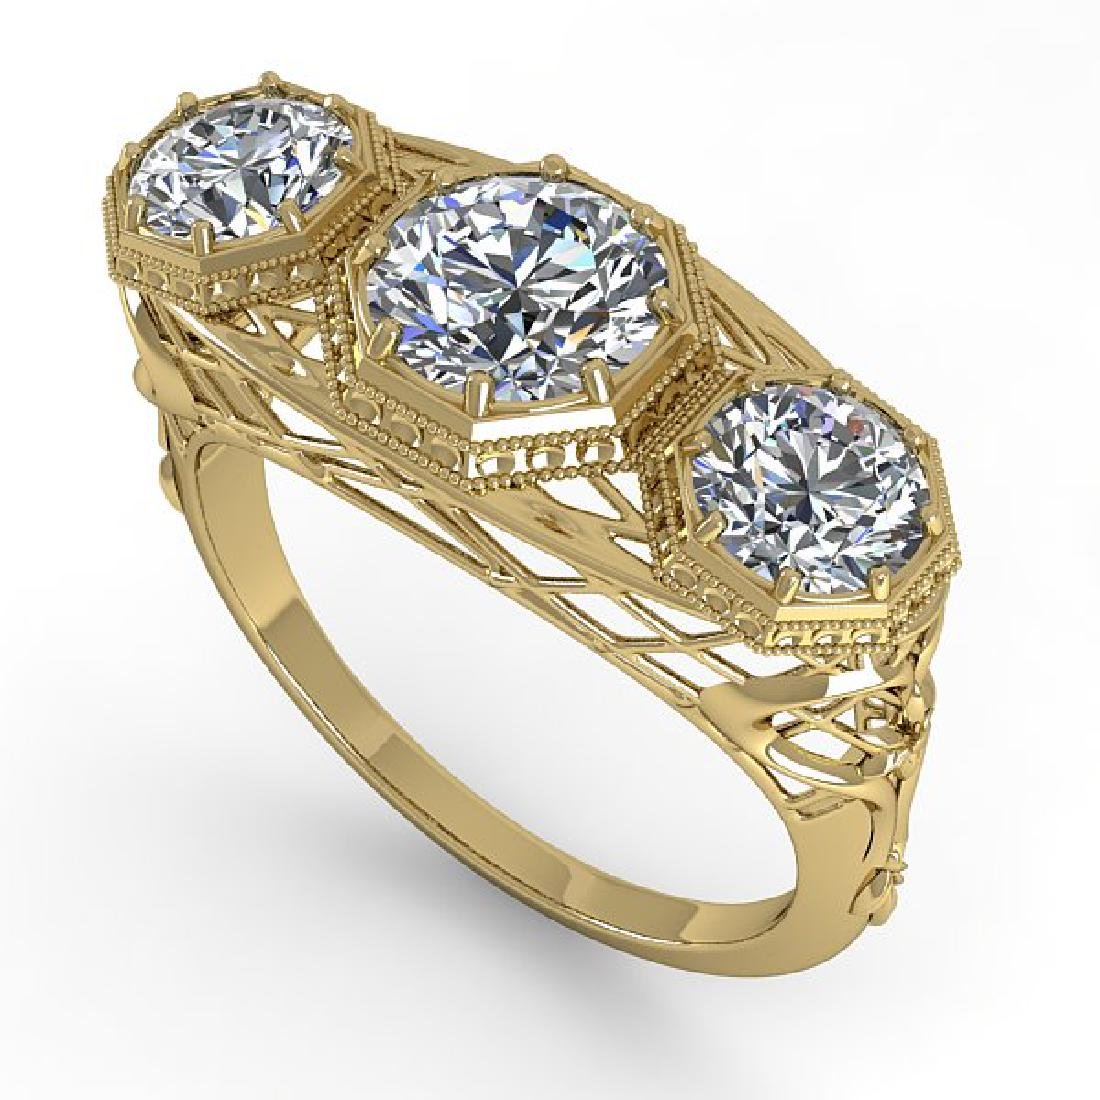 2 CTW VS/SI Diamond Ring 14K Yellow Gold - 2